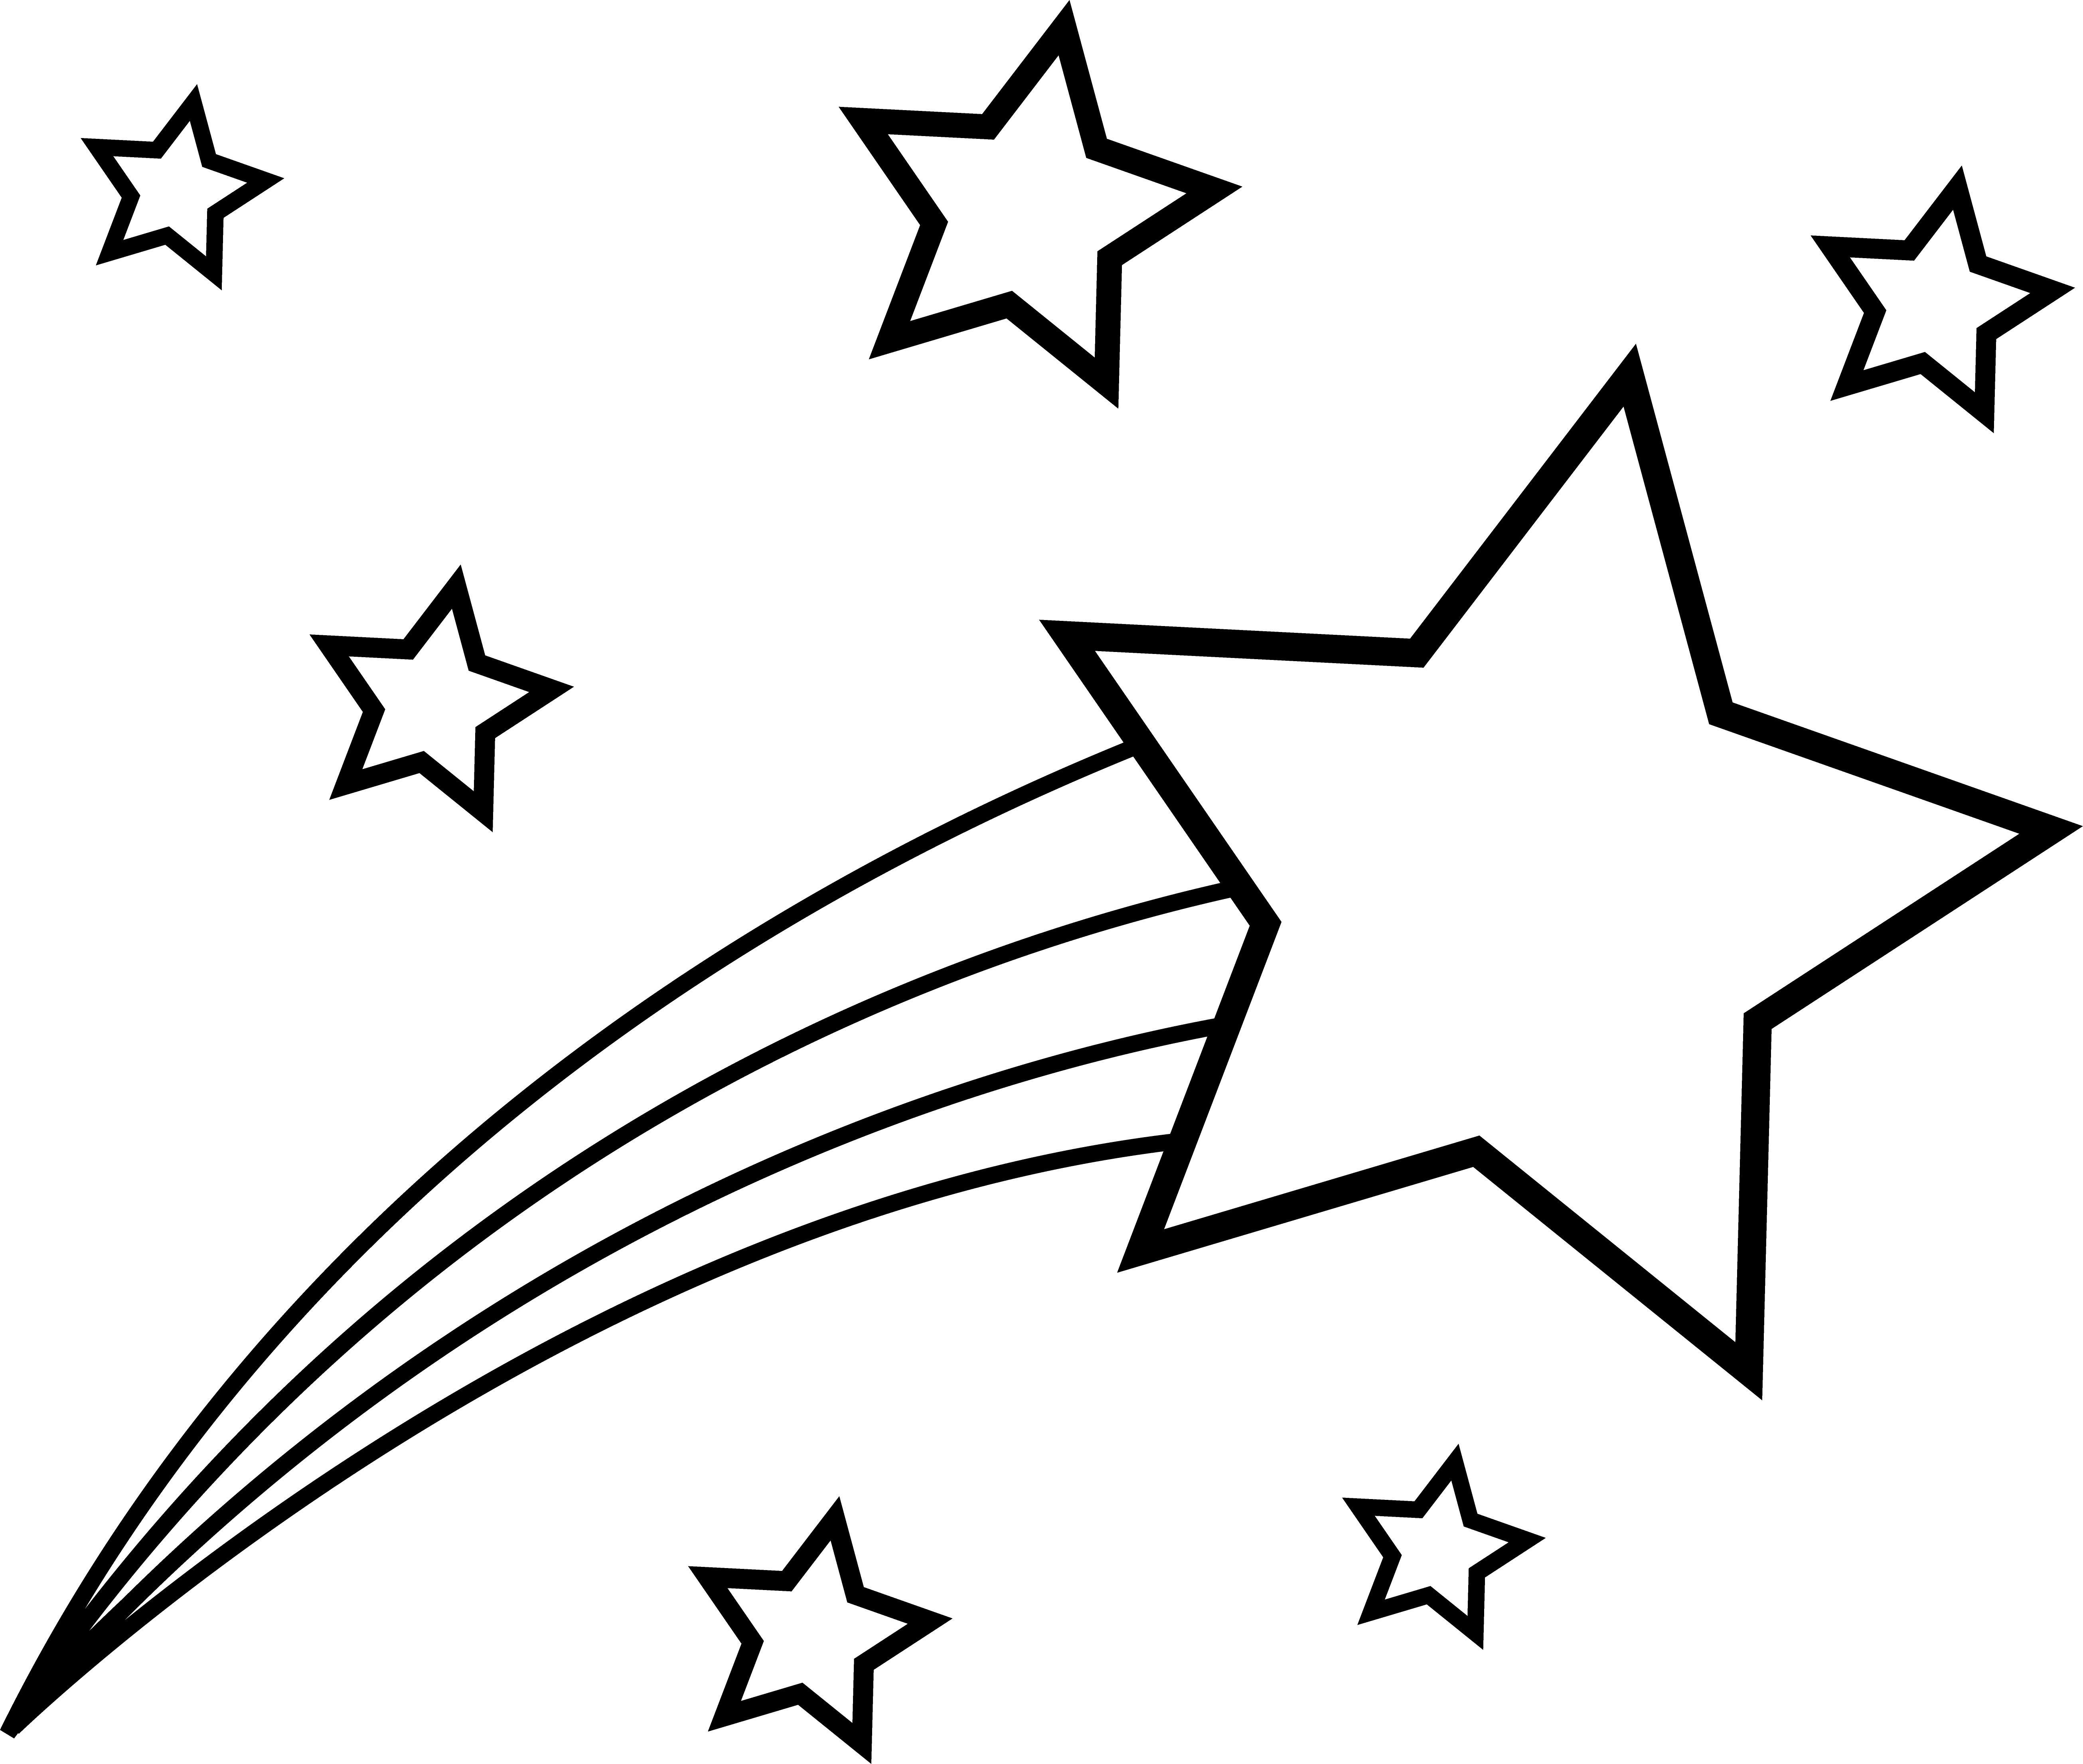 Stars Clipart Black And White u0026 Stars Black And White Clip Art ..